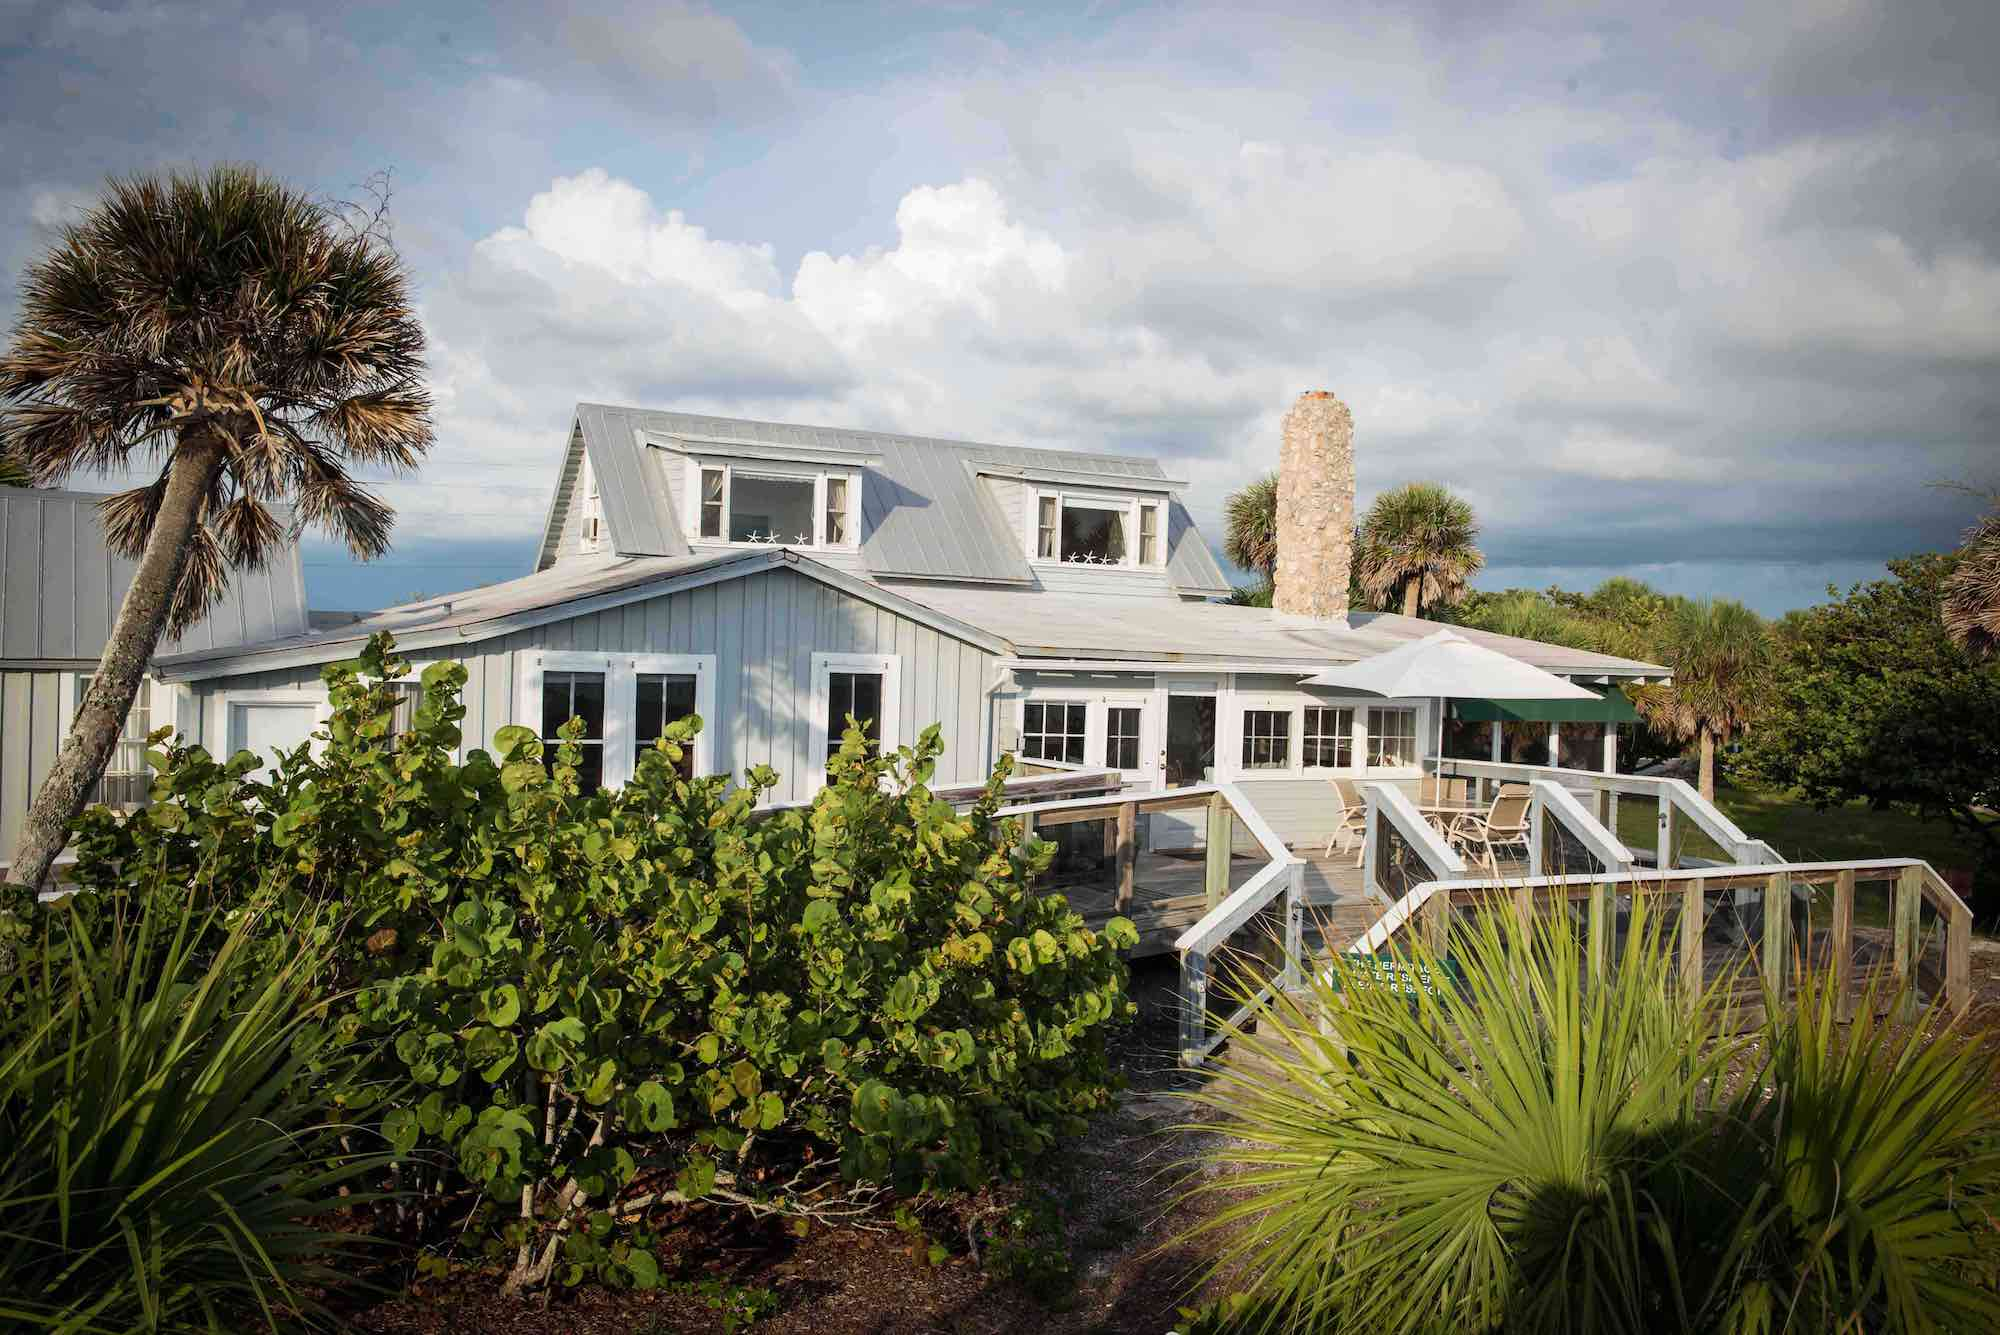 Historic beachside property tours offered in September